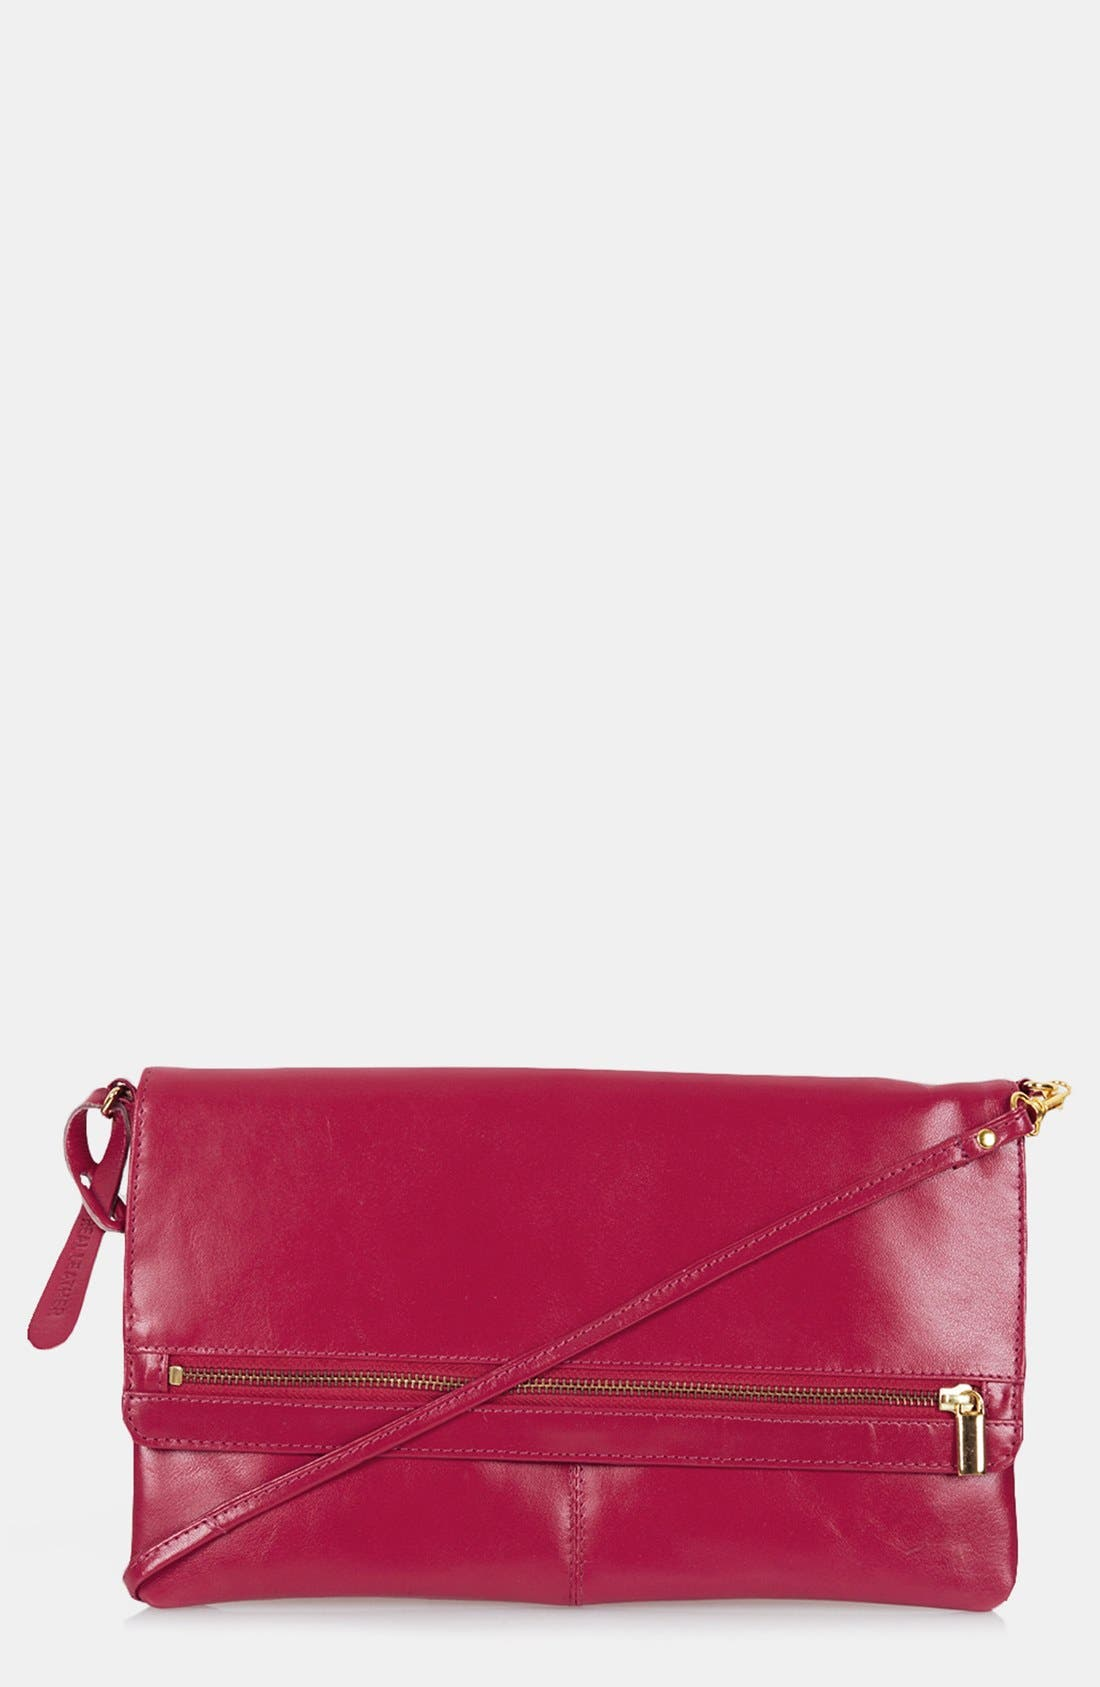 Alternate Image 1 Selected - Topshop Leather Foldover Leather Clutch